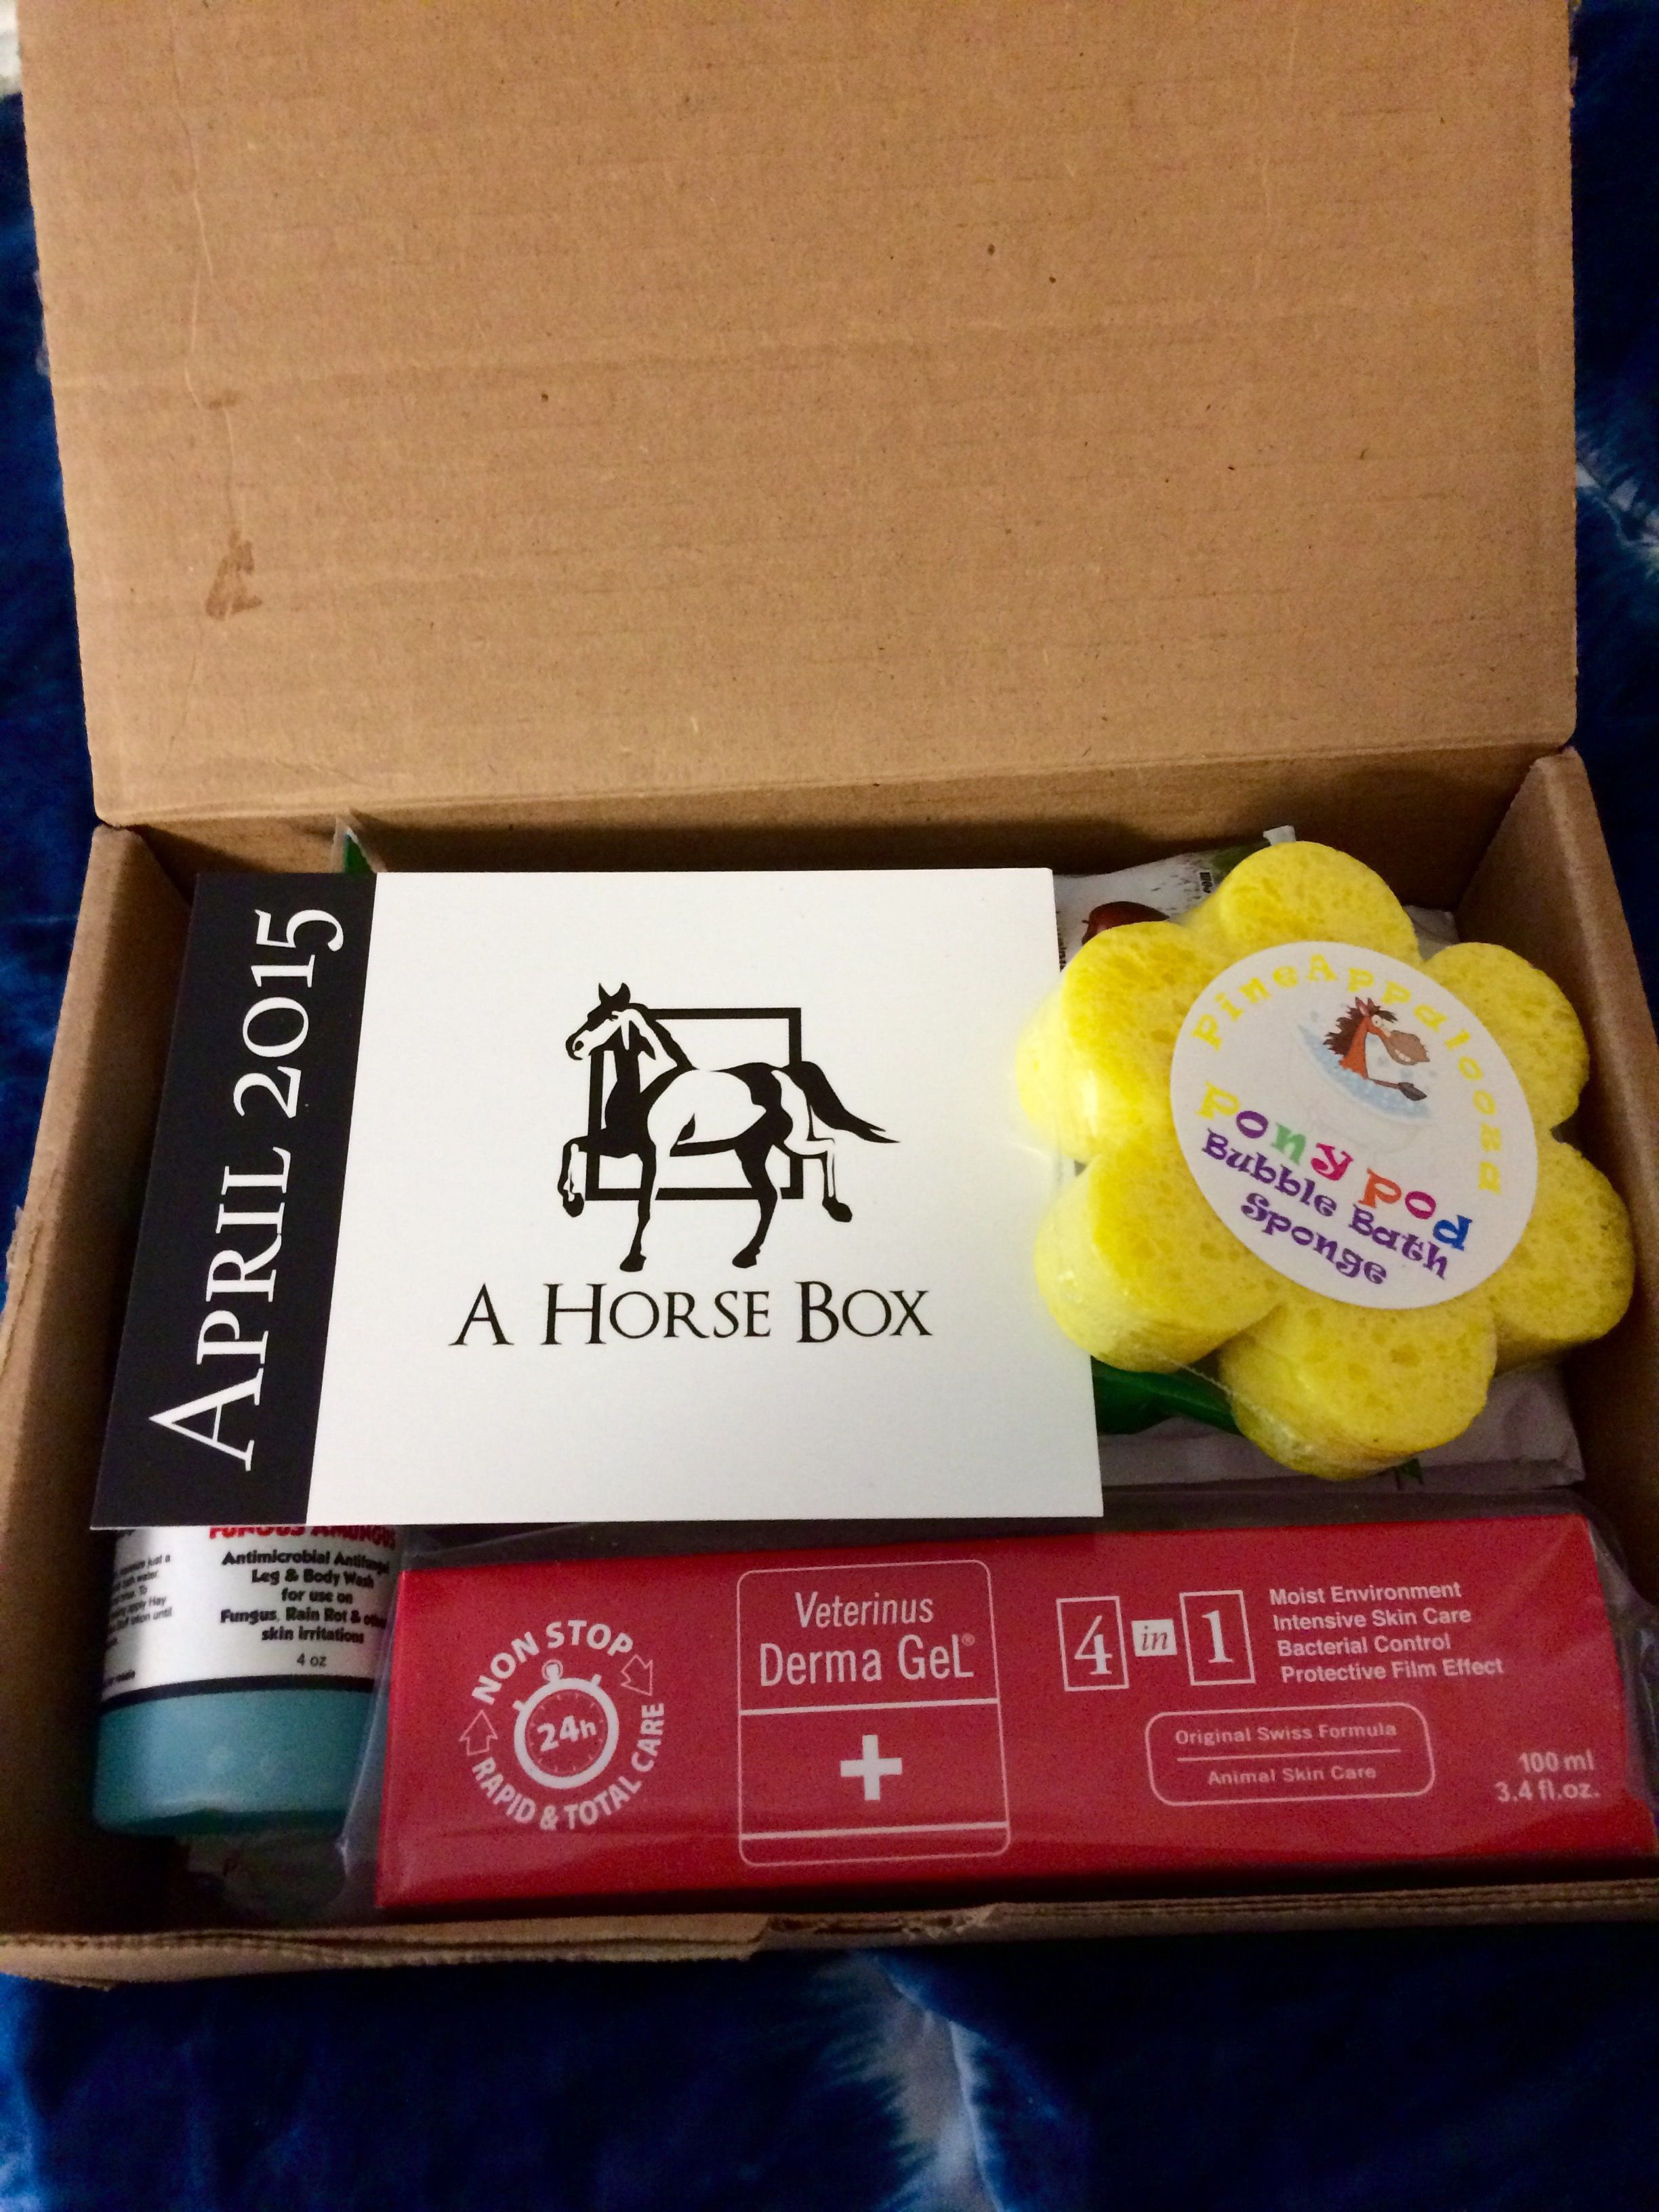 Horse Nation Product Review: A Horse Box, Monthly Delivery Service